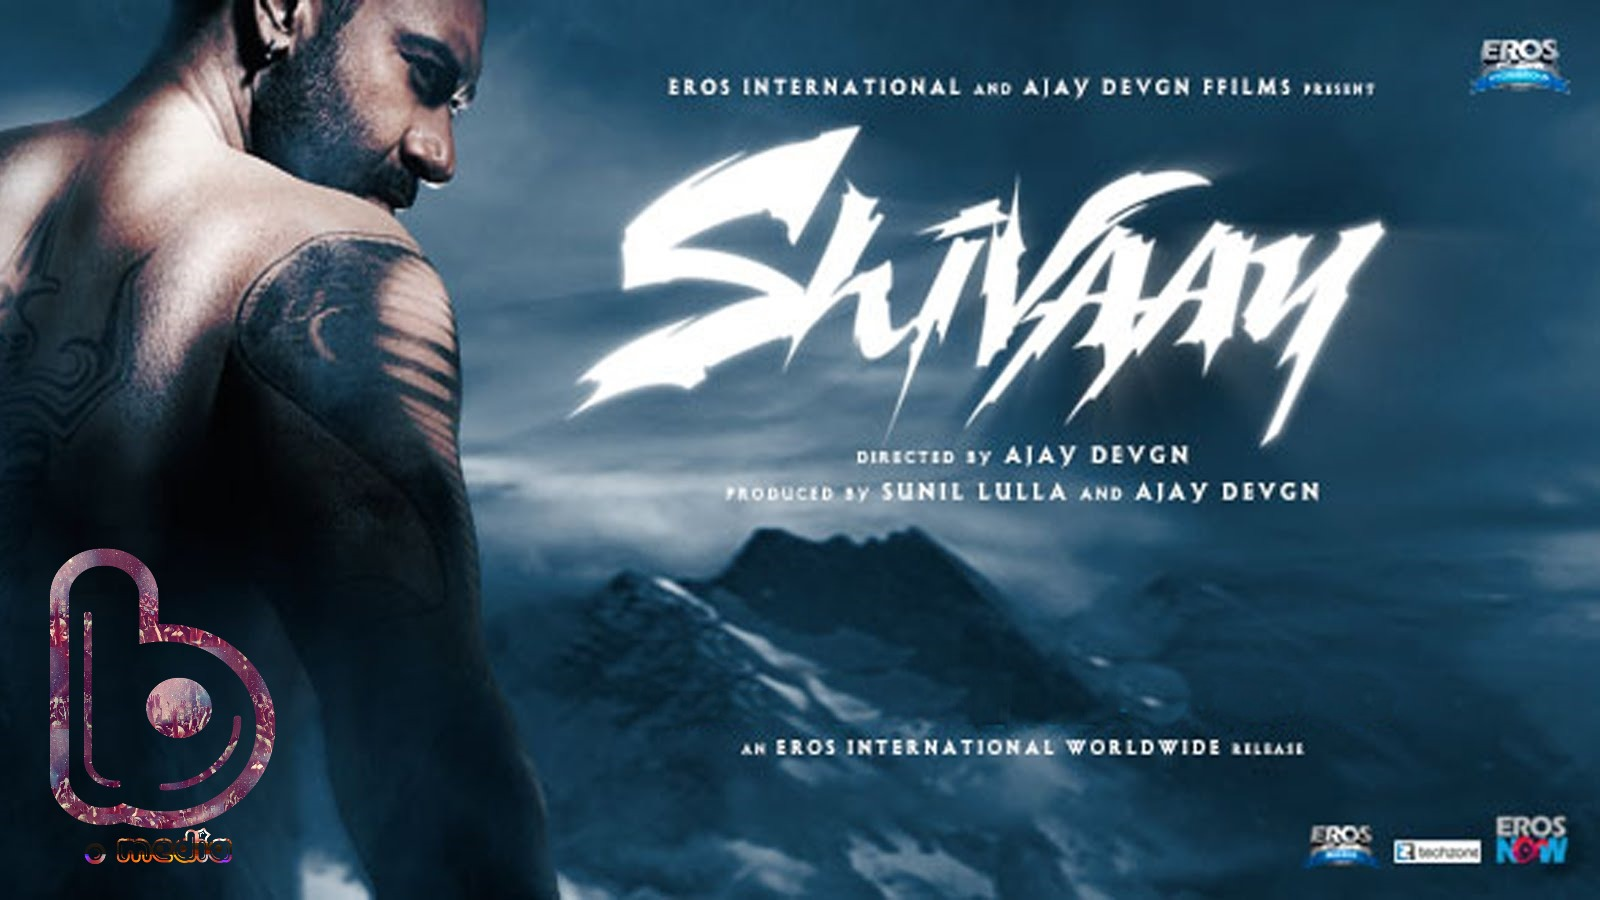 Most Awaited Bollywood Movies releasing in 2016 - Shivaay